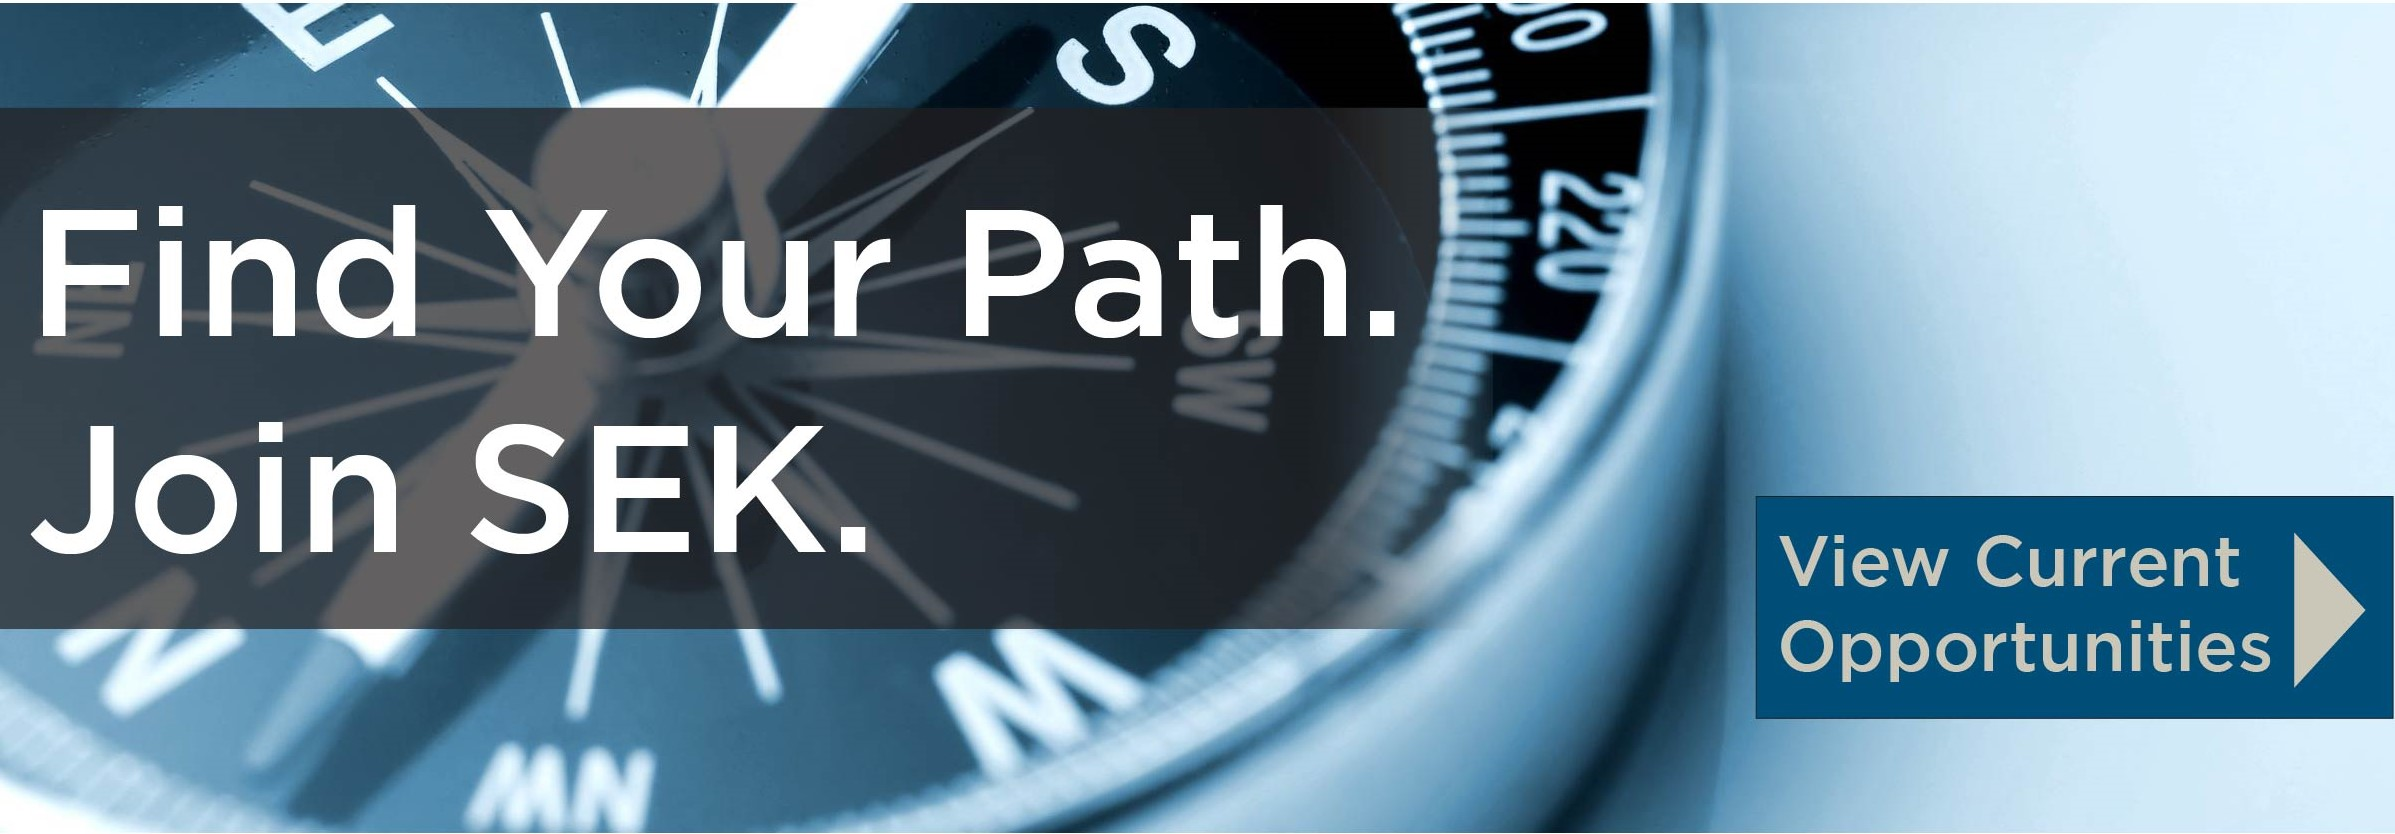 Find Your Path. Join SEK.